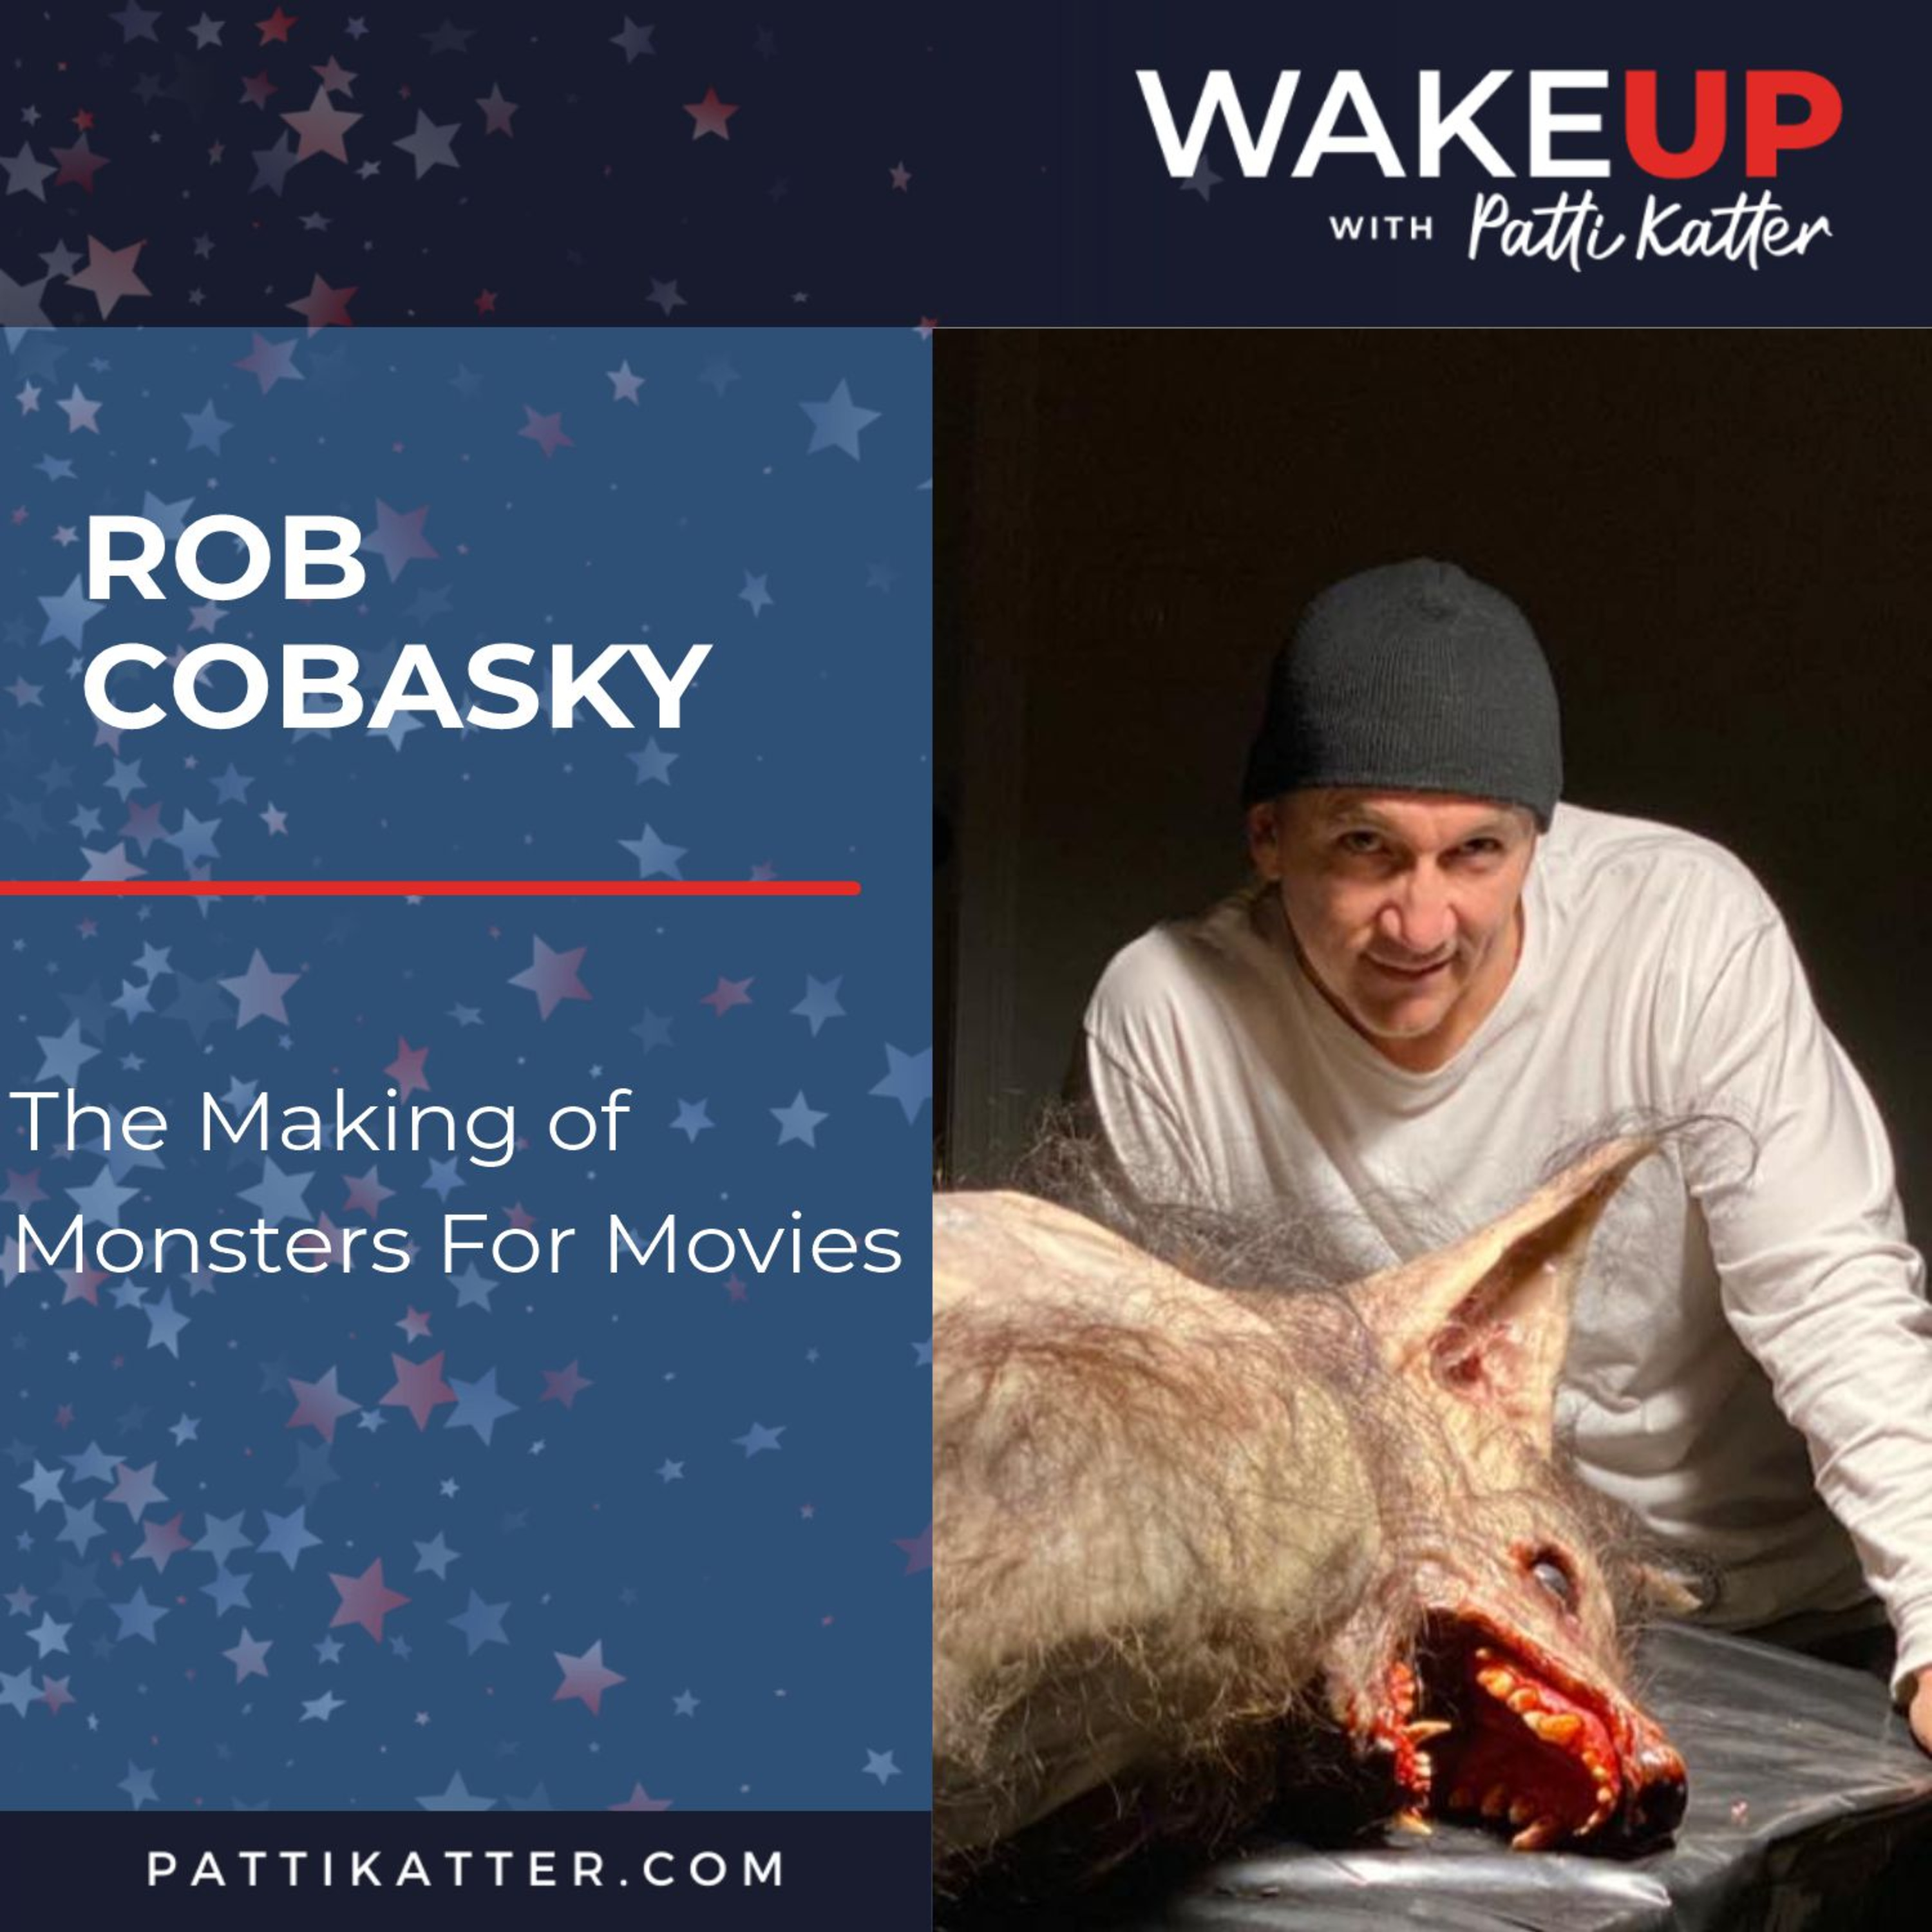 Rob Cobasky: The Making of Monsters For Movies